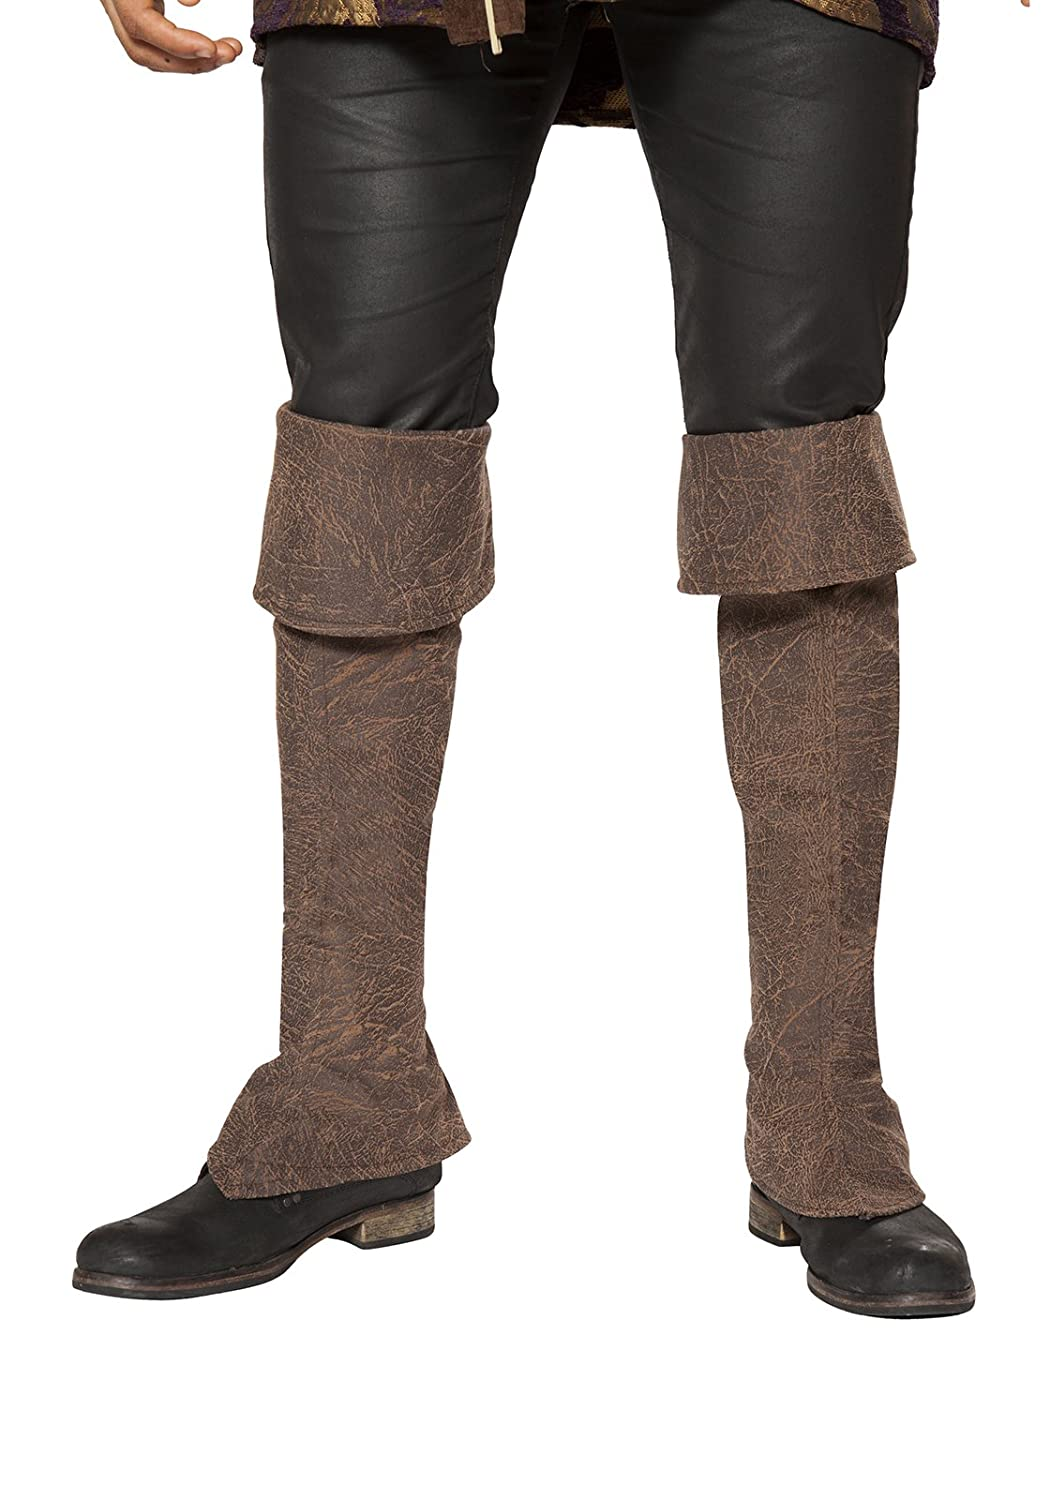 Roma Costume Mens Pirate Boot Covers with Zipper Detail